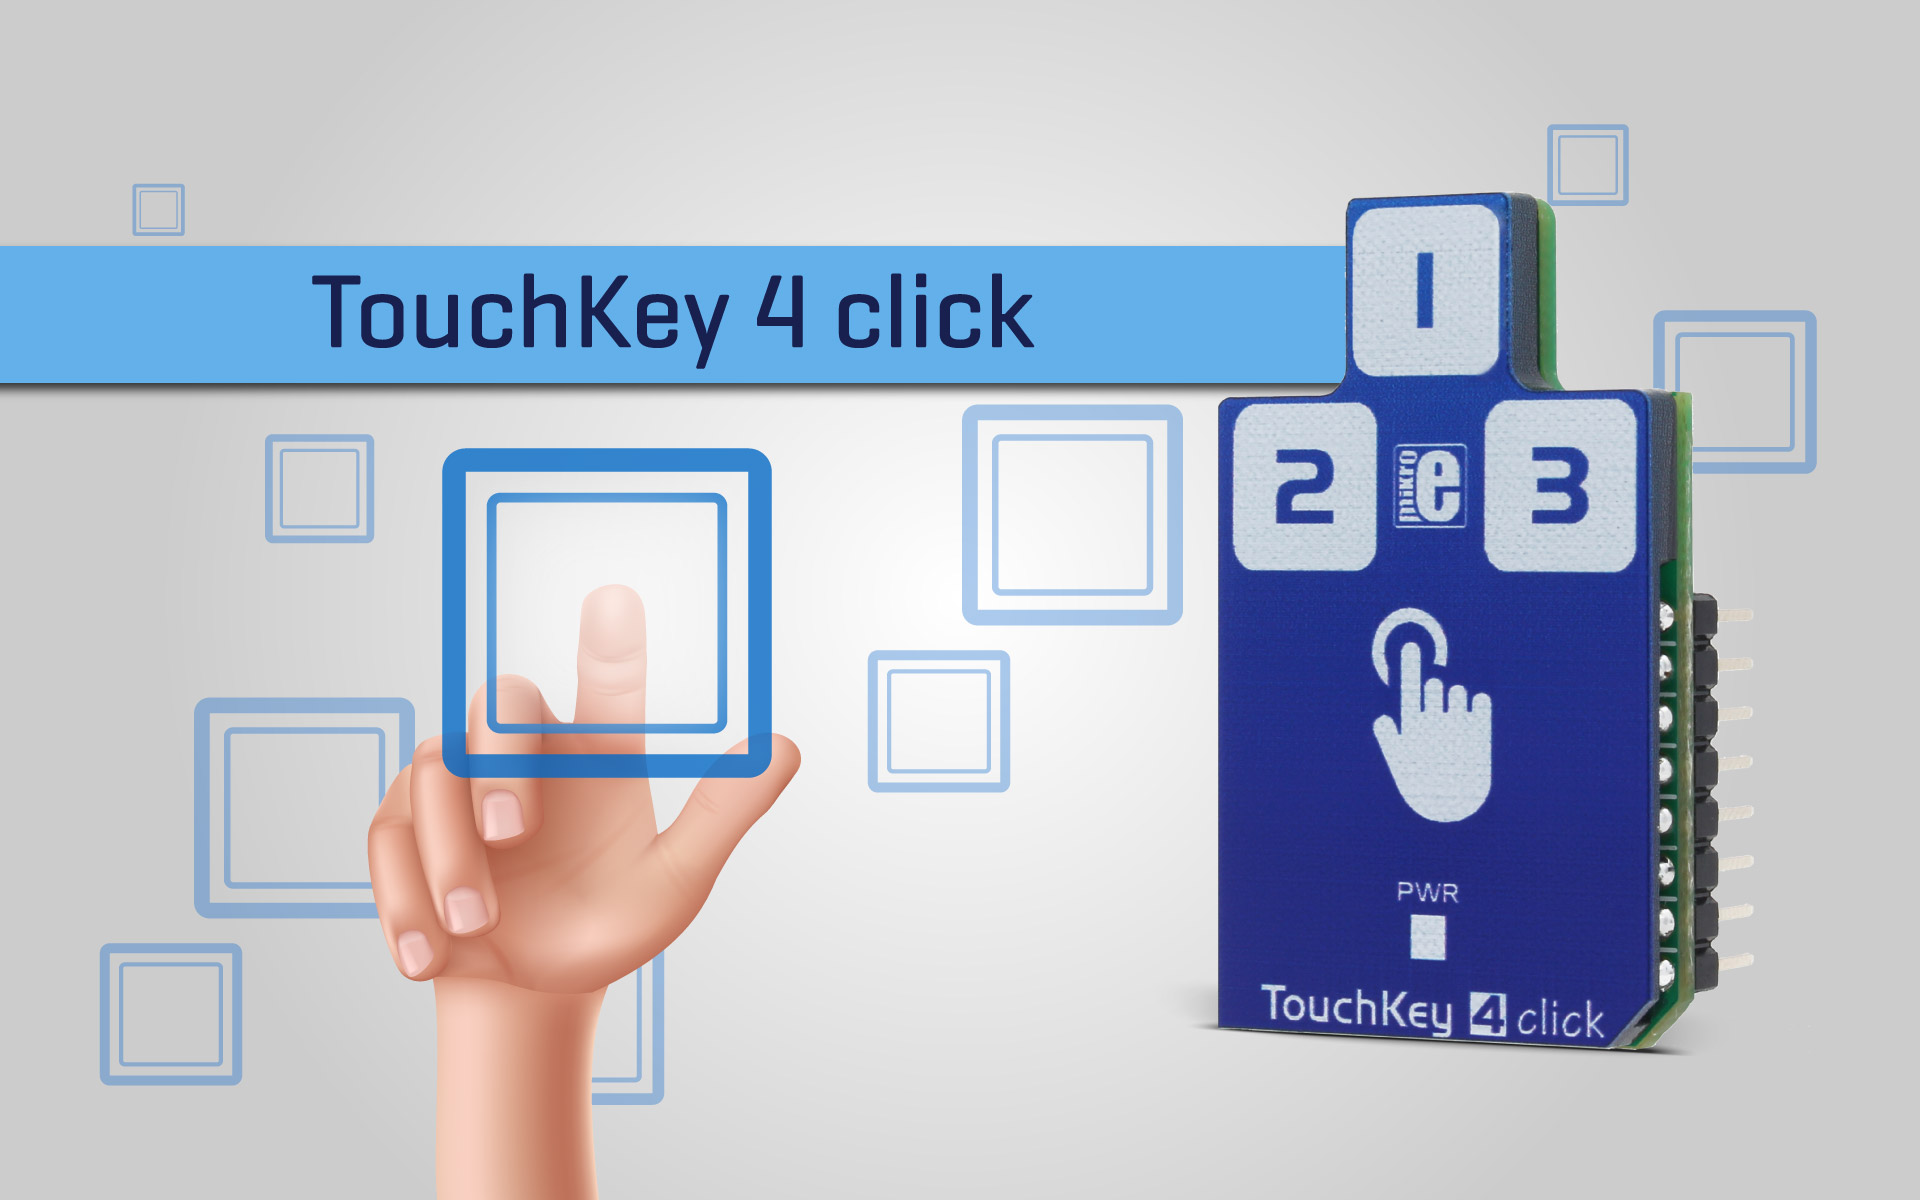 Touch Key 4 click - capacitive touch sensor Click™ board